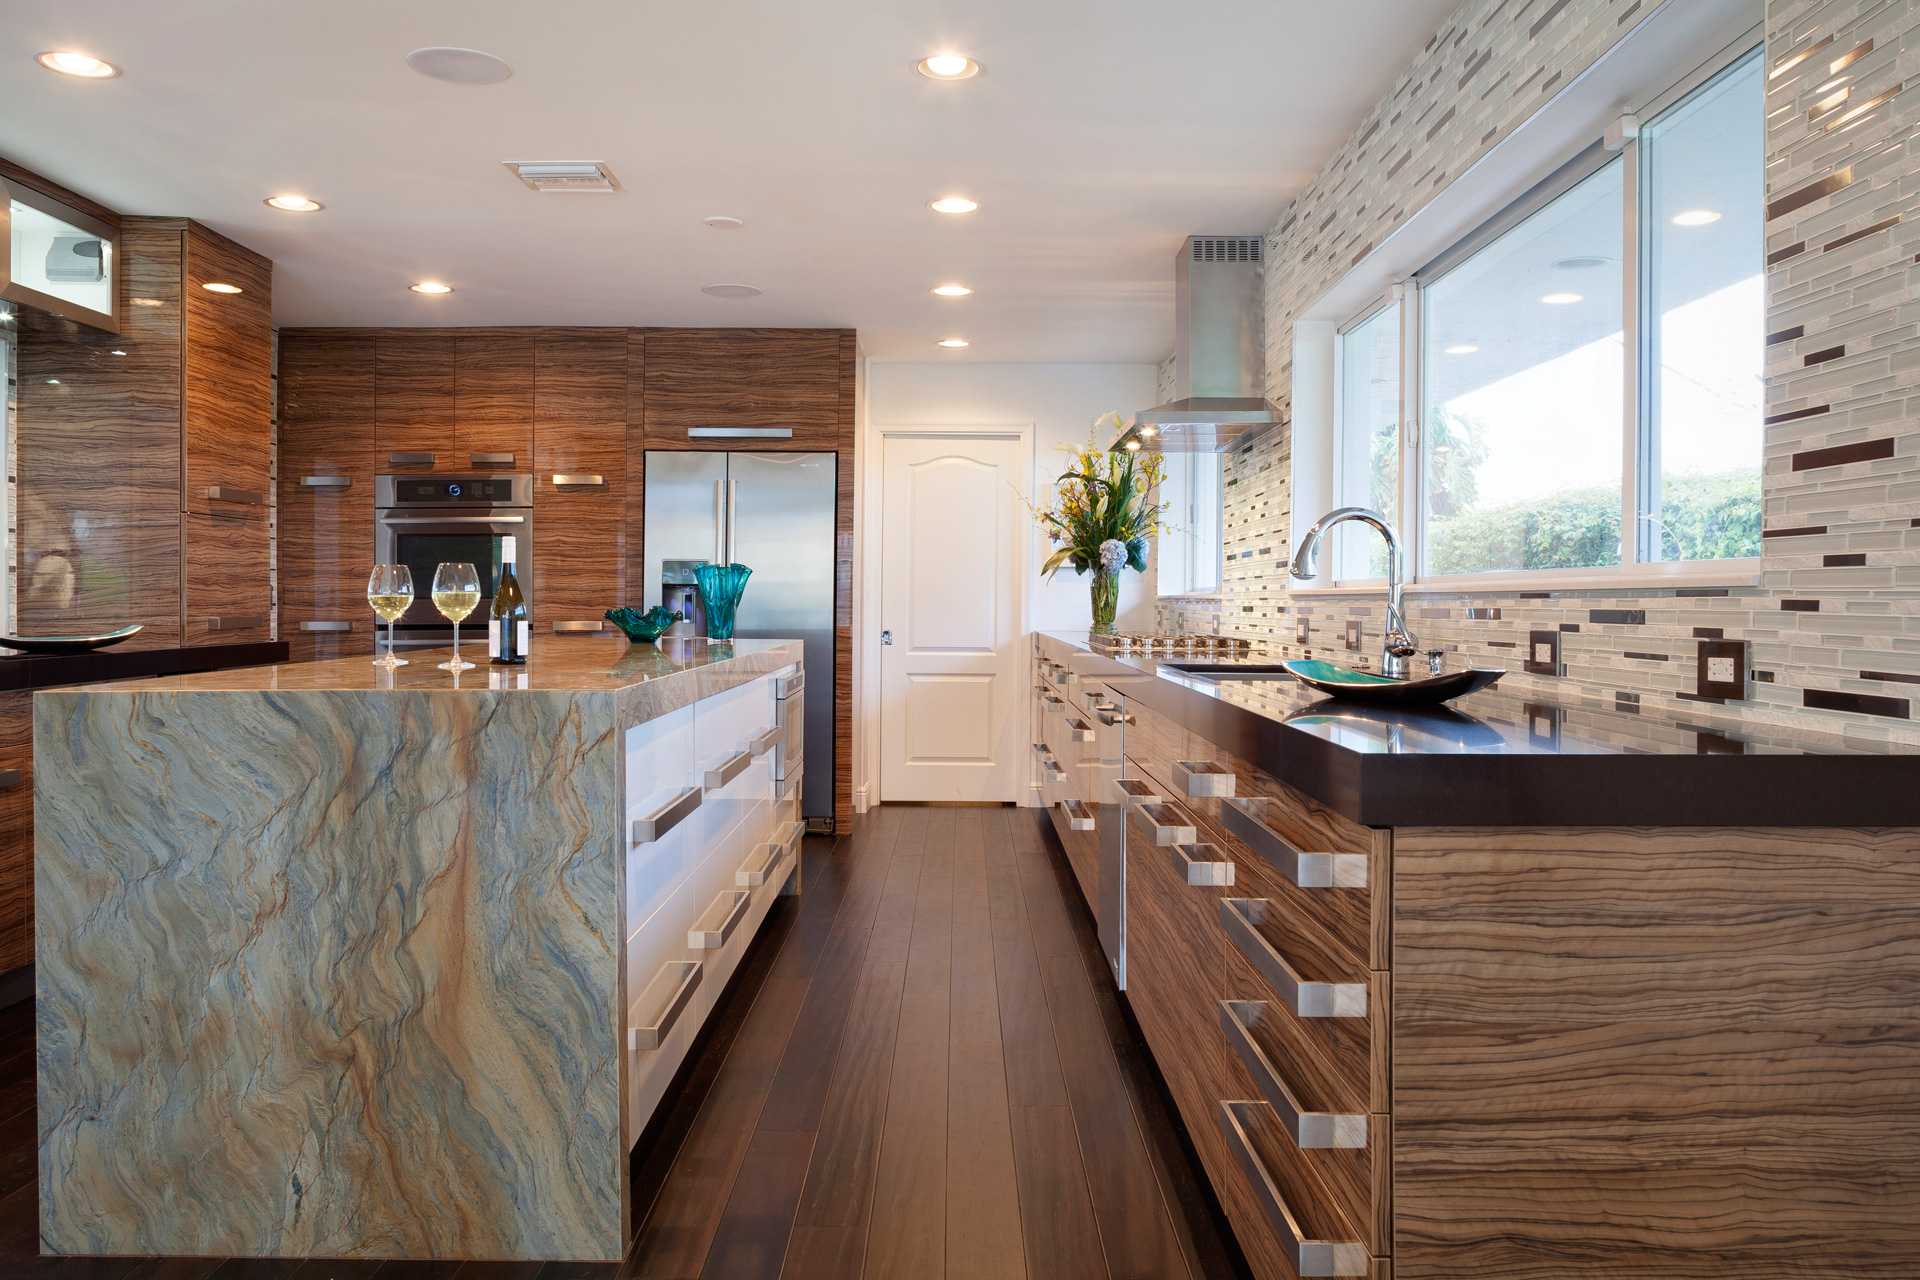 Northeast Rd Court Pompano Beach The Place For Kitchens And Kitchen